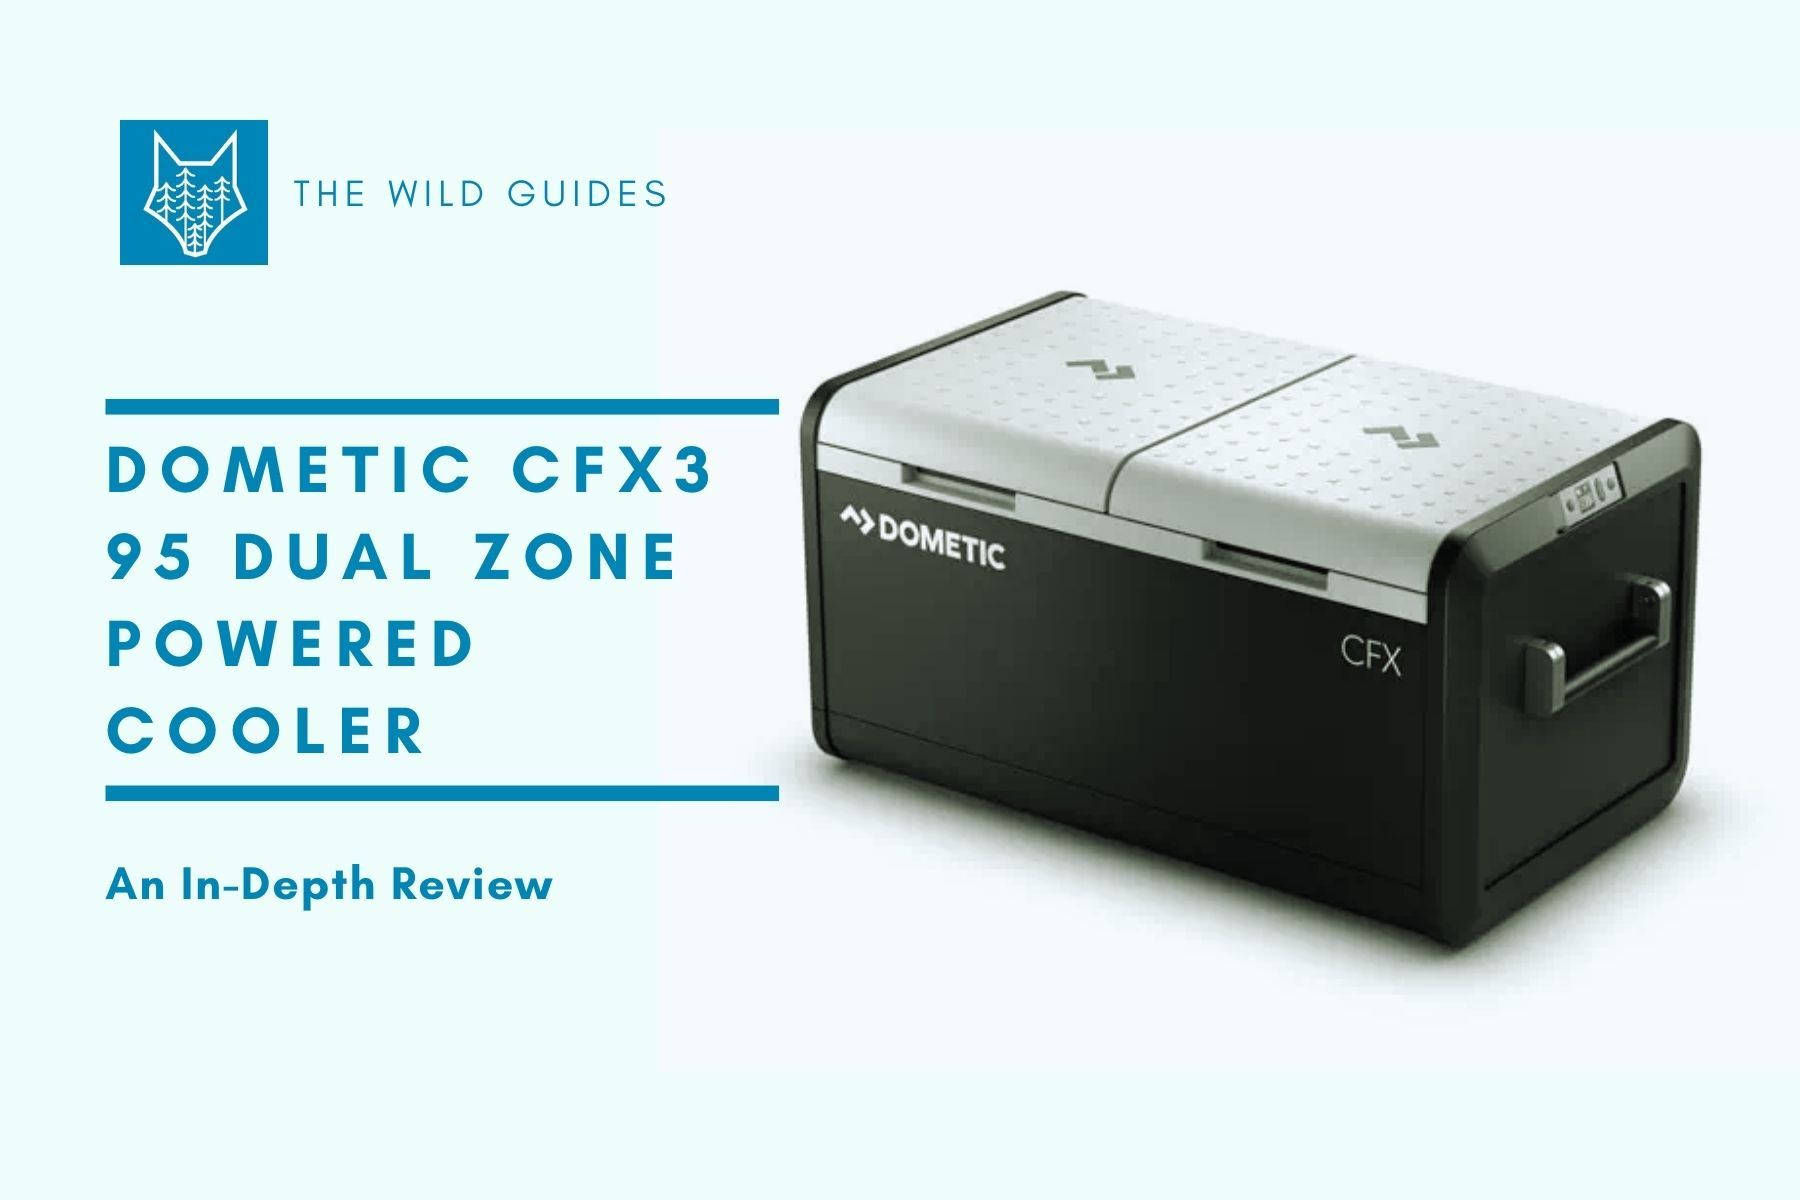 Dometic CFX3 95 Dual Zone Powered Cooler – An In-Depth Review